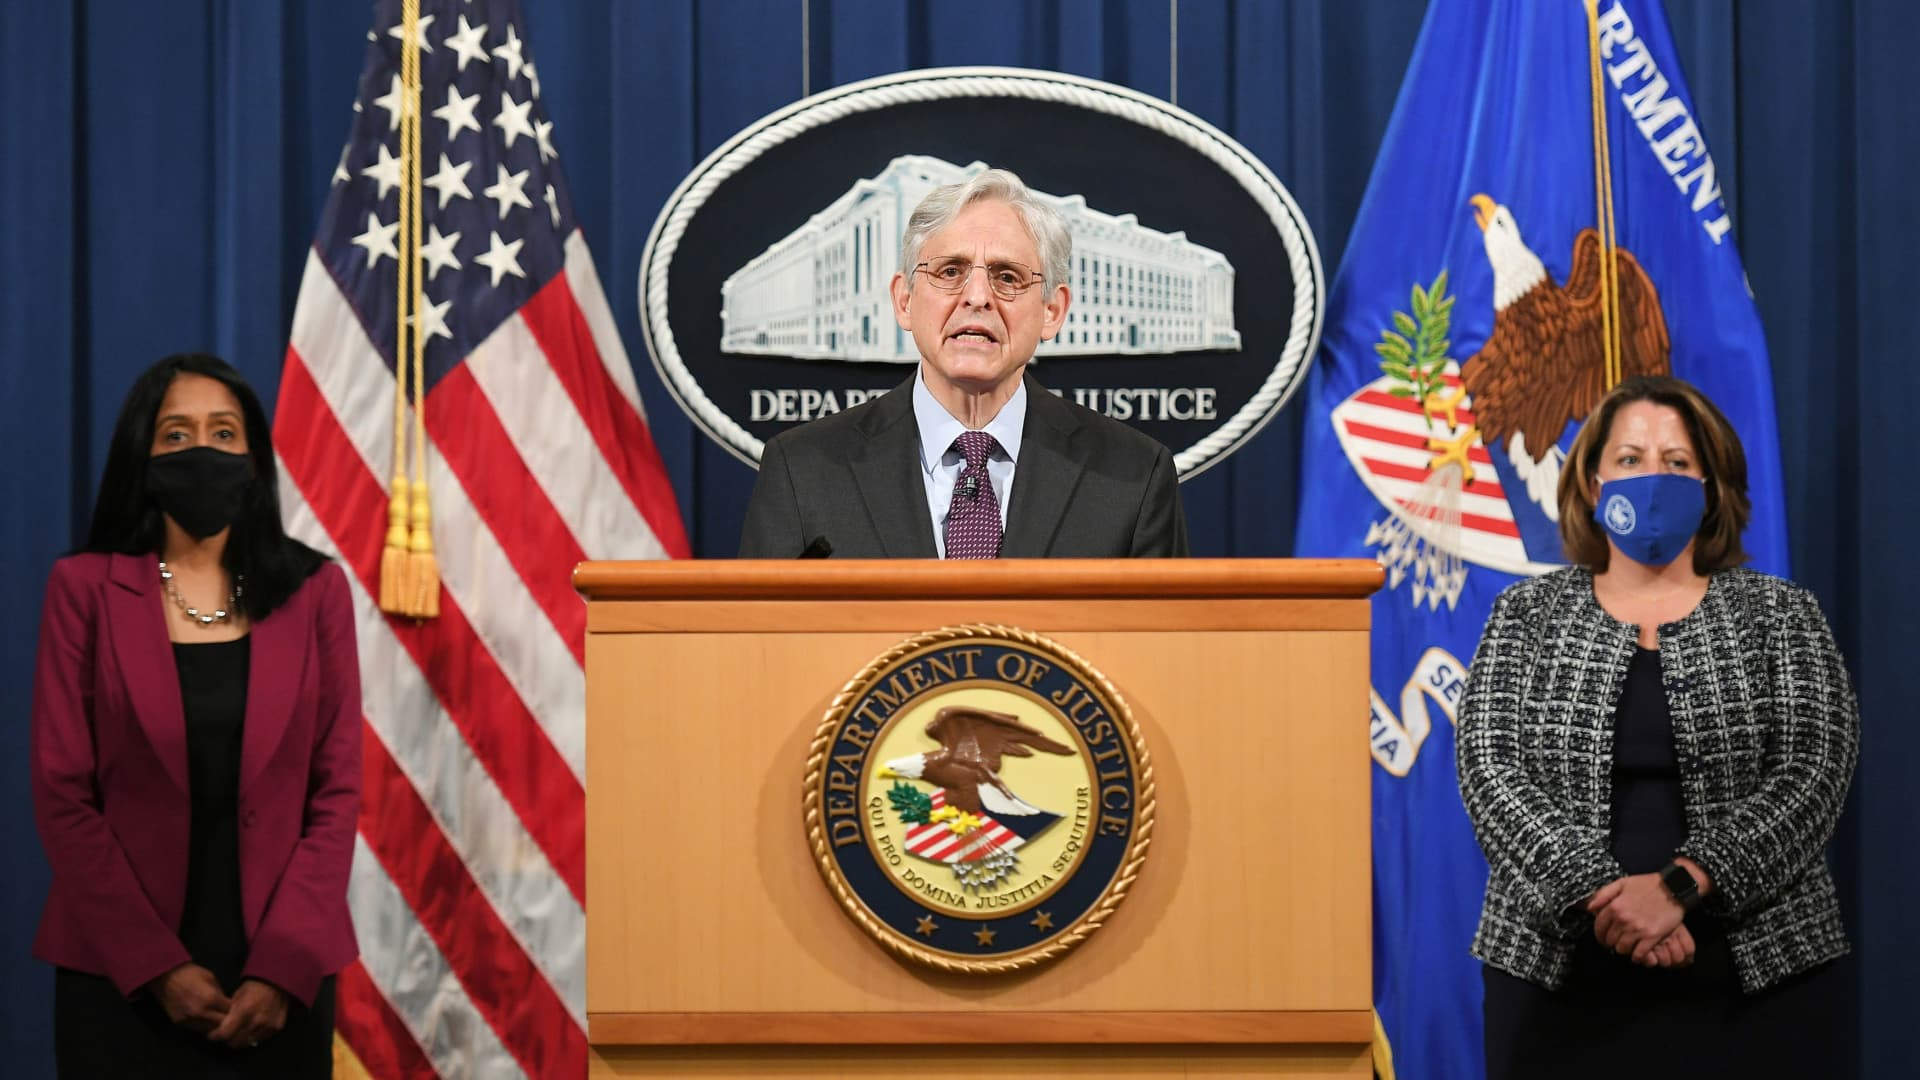 U.S. Attorney General Merrick Garland speaks at the Department of Justice in Washington, U.S. April 26, 2021.